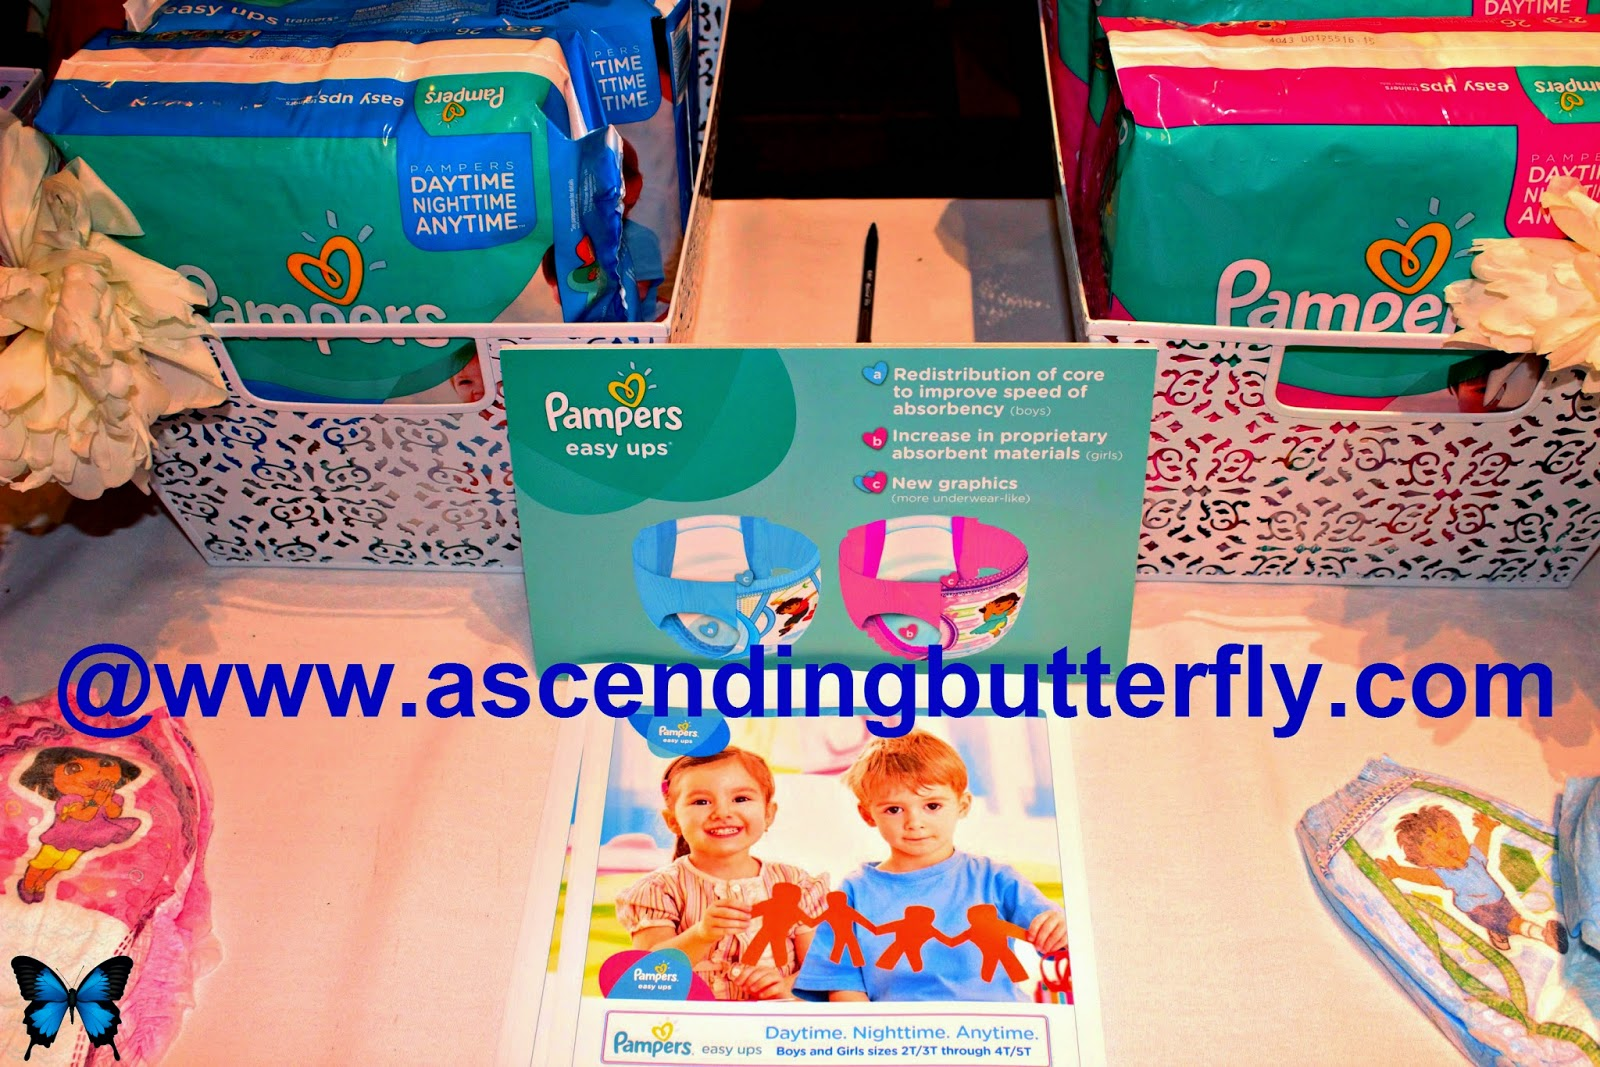 Pampers at Getting Gorgeous 2014